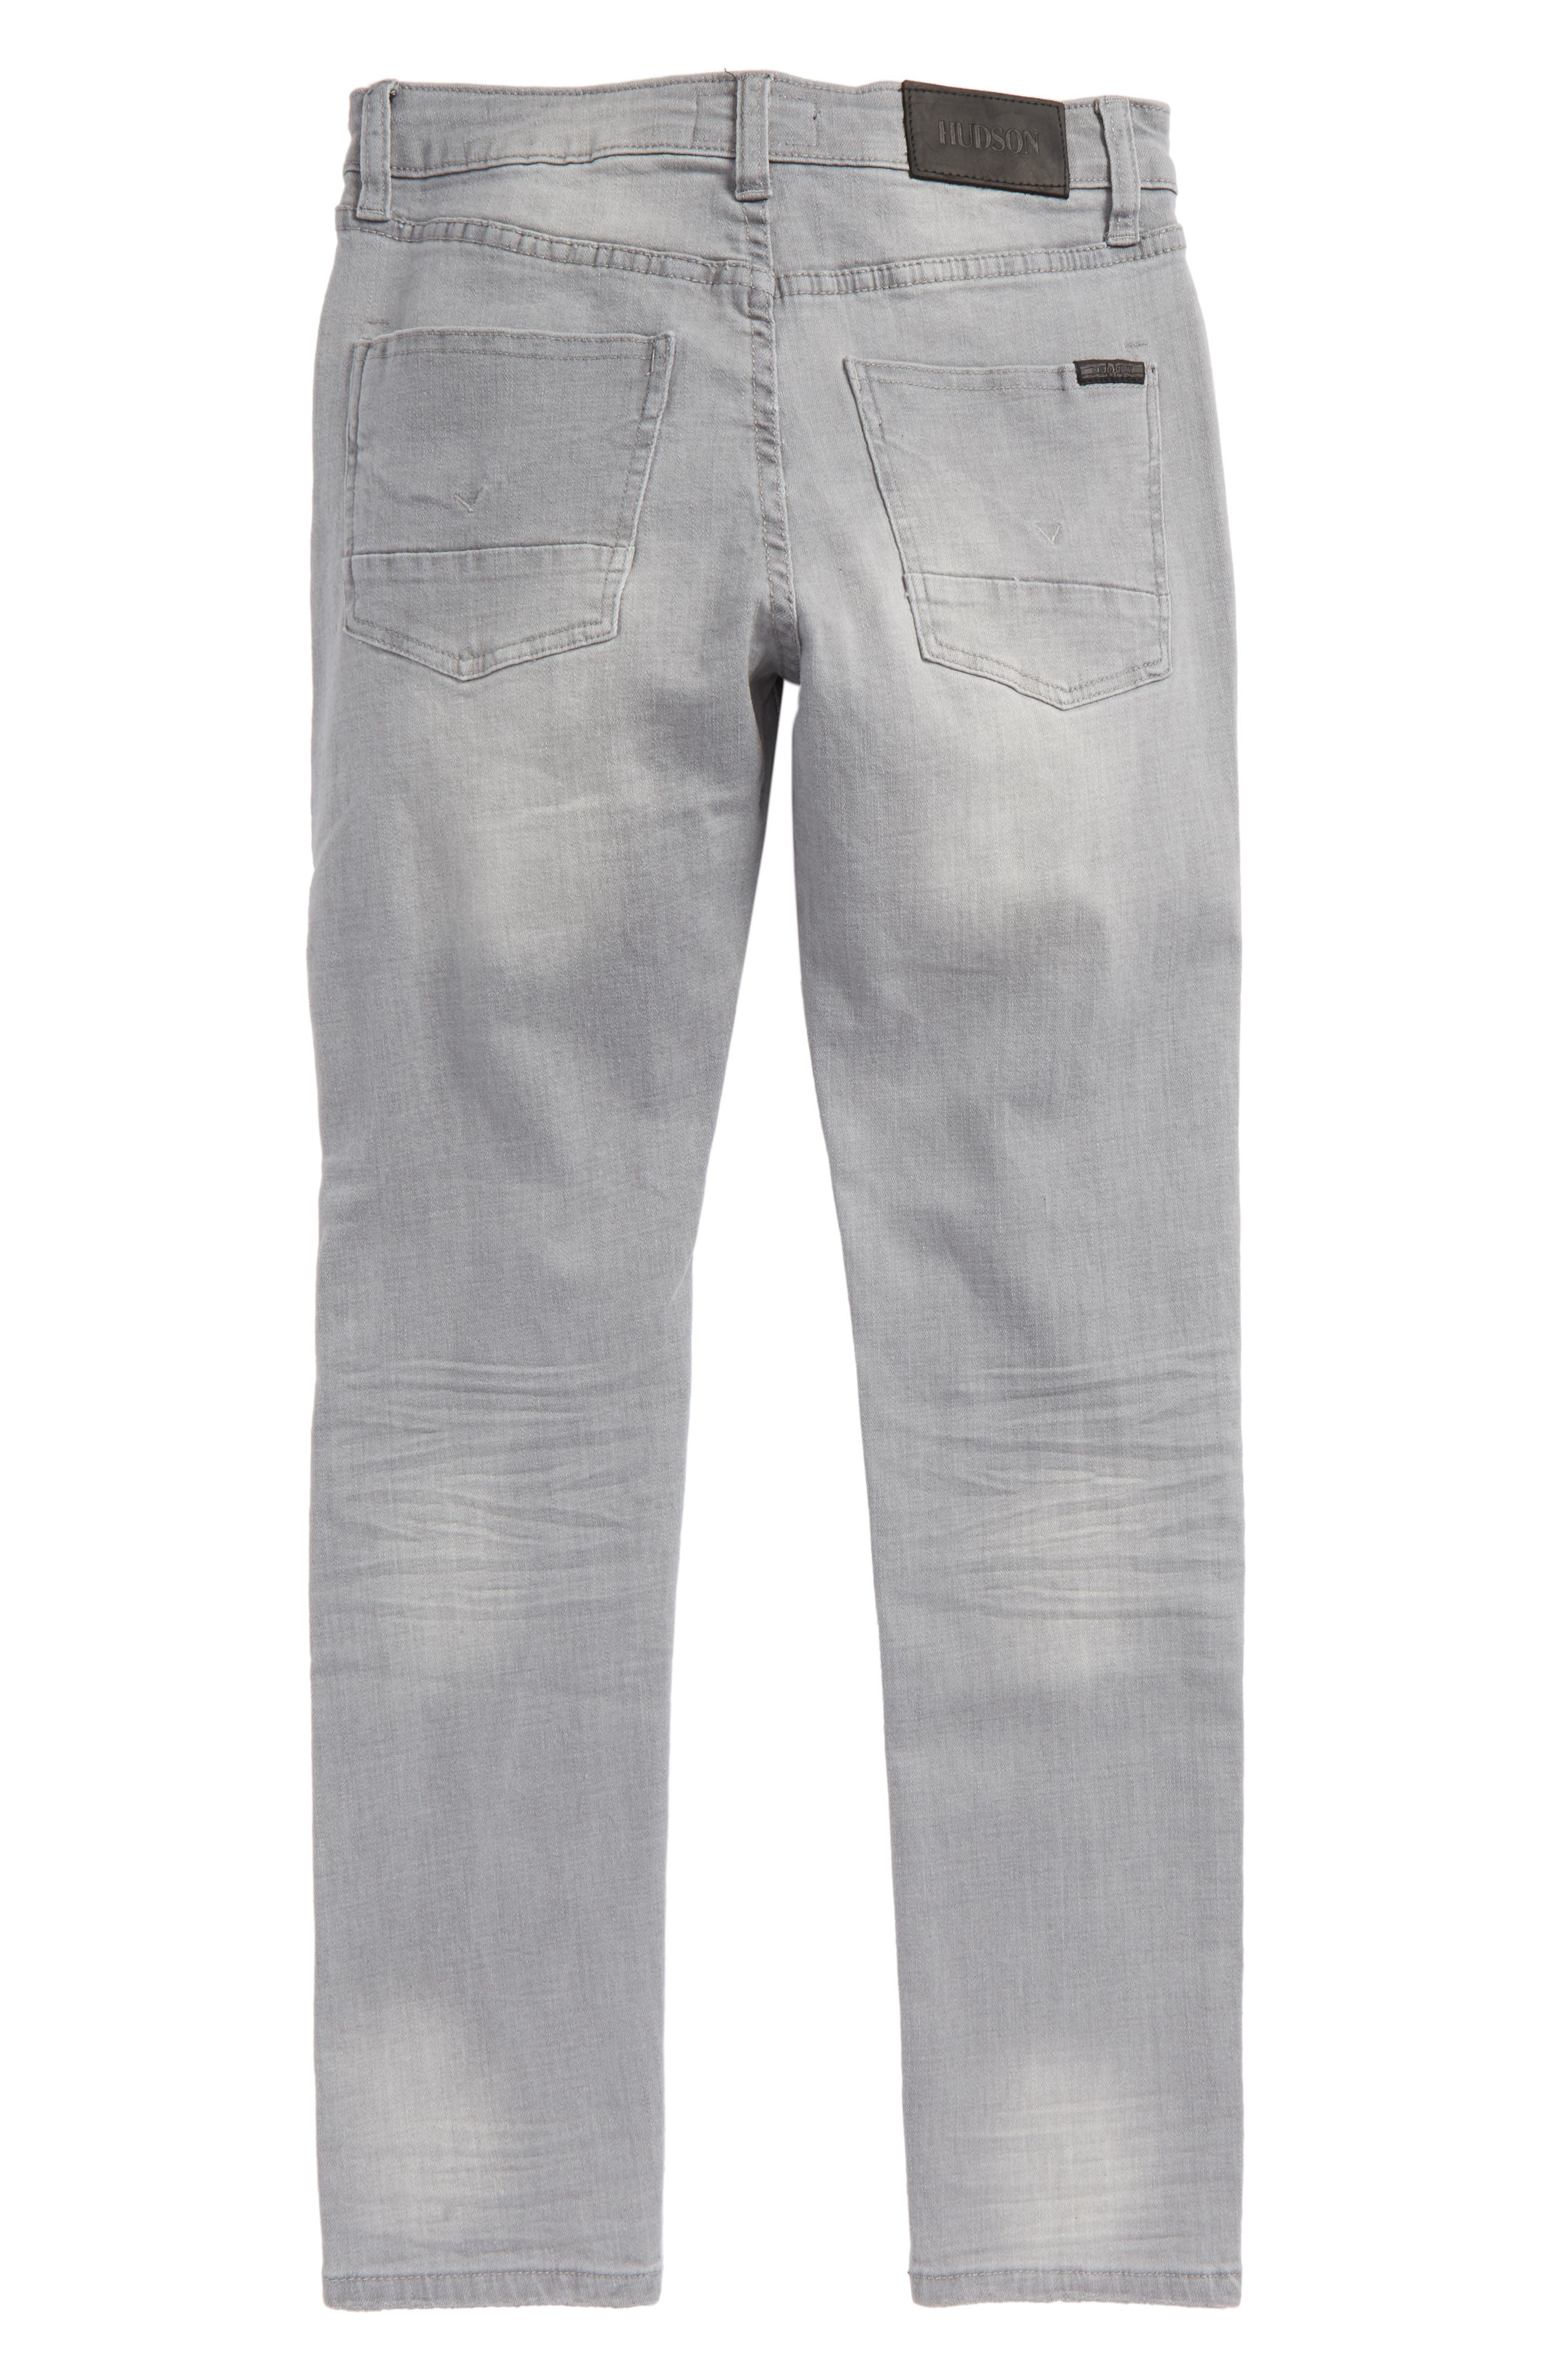 Jude Slim Fit Skinny Jeans,                             Alternate thumbnail 2, color,                             Ice Gray